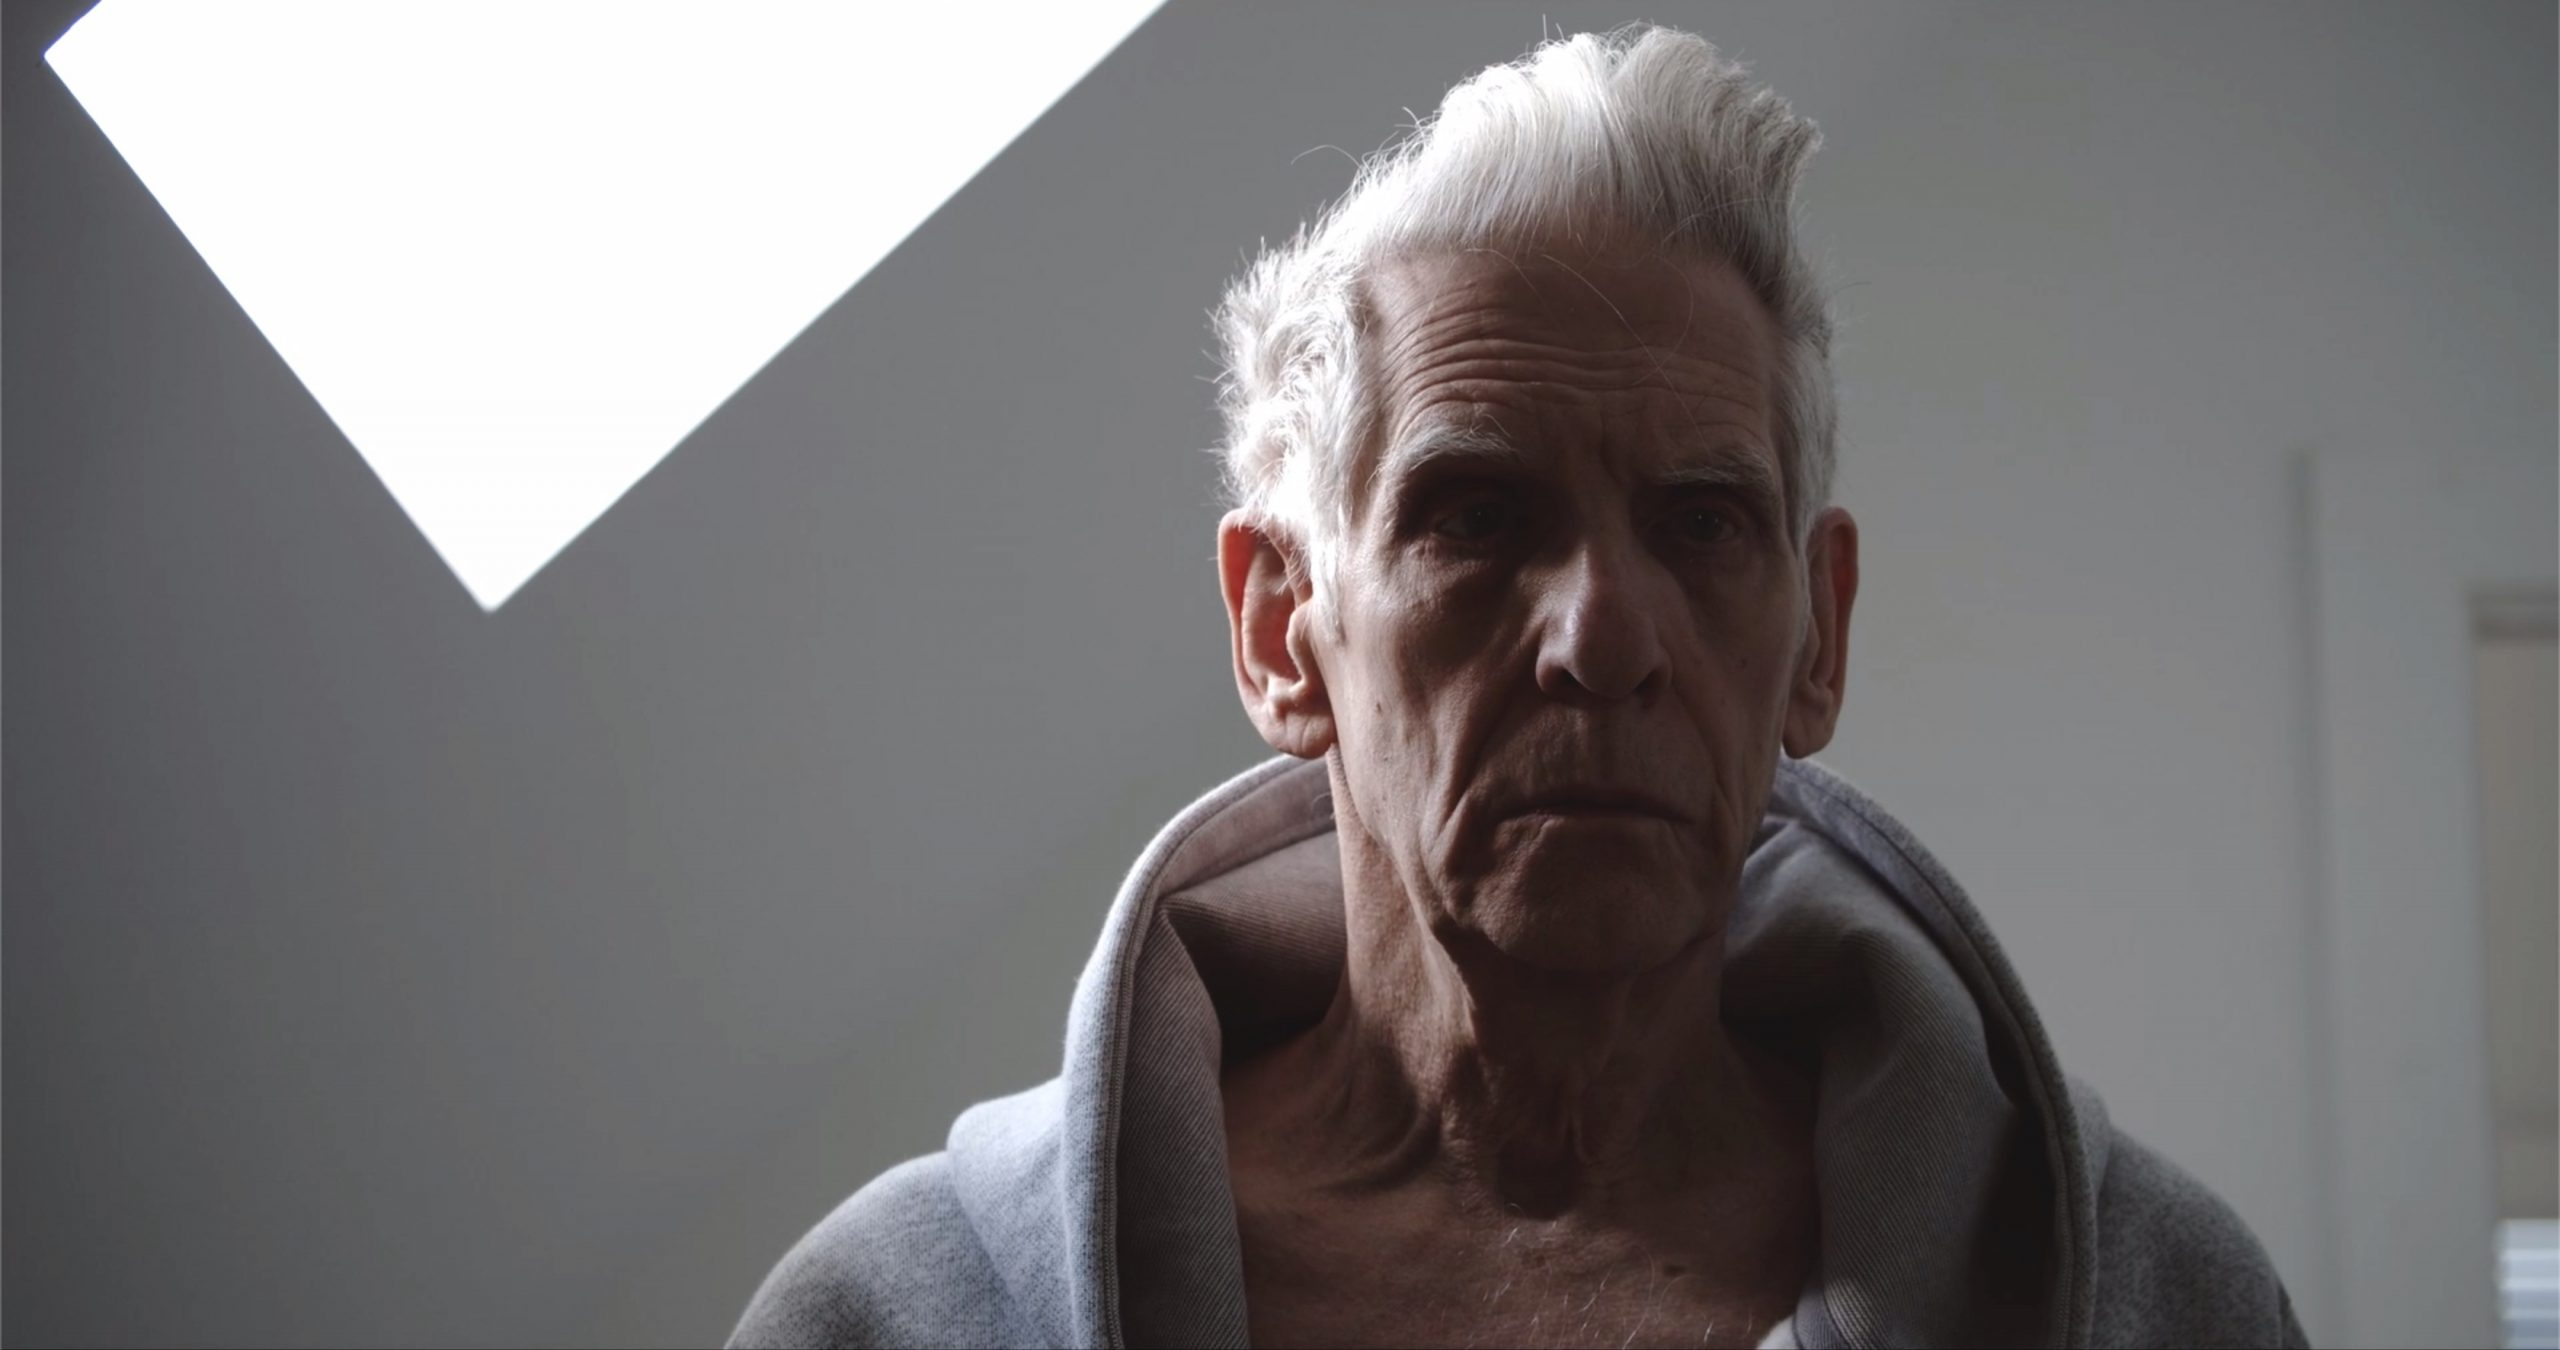 'Technology Is an Extension of Our Bodies': Why David Cronenberg Made Video Art About His Own Death as His First NFT